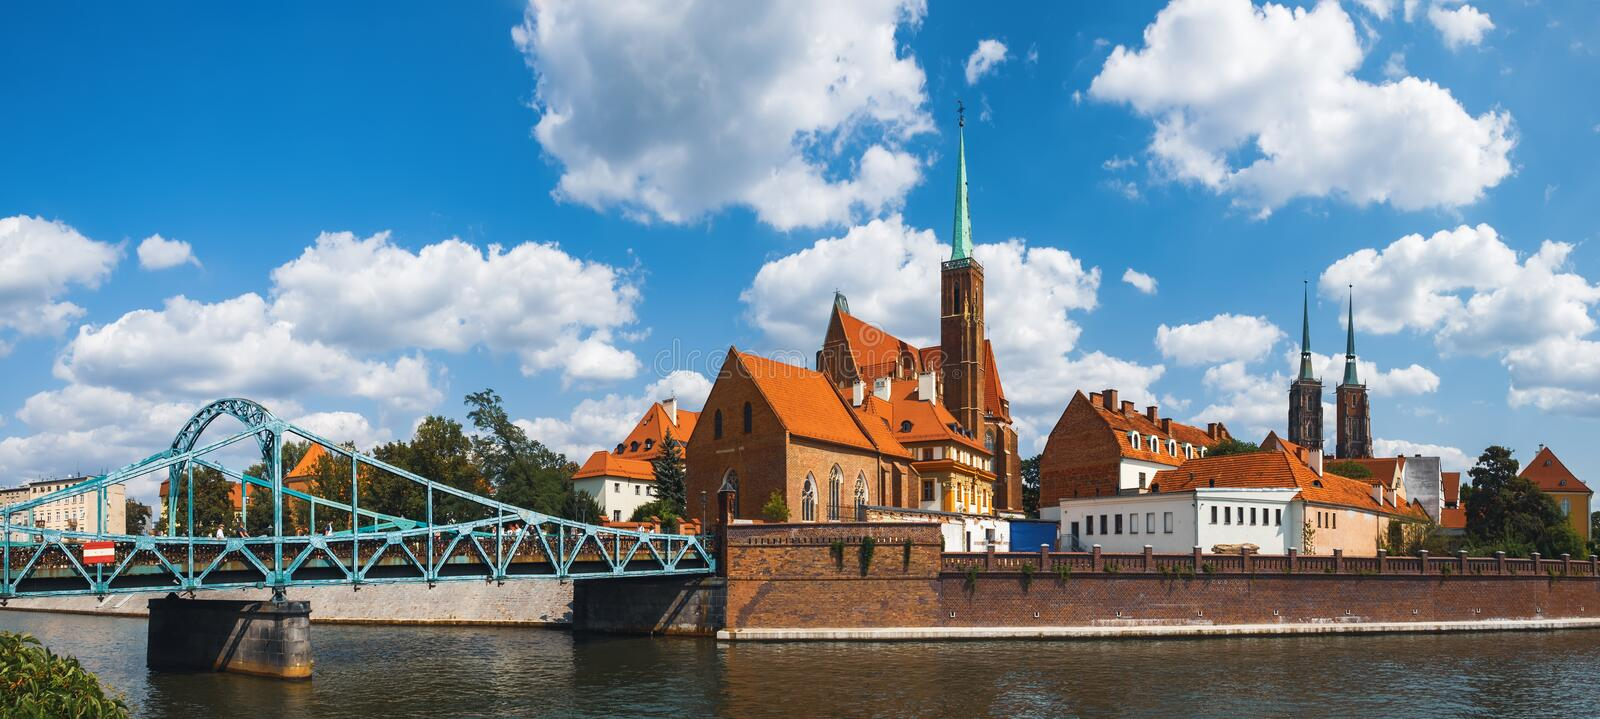 Tumski Bridge and Island in Wroclaw, Poland. Famous tourist destination in Wroclaw. Tumski Bridge over Oder river and Cathedral Tumski Island are the oldest part stock photos